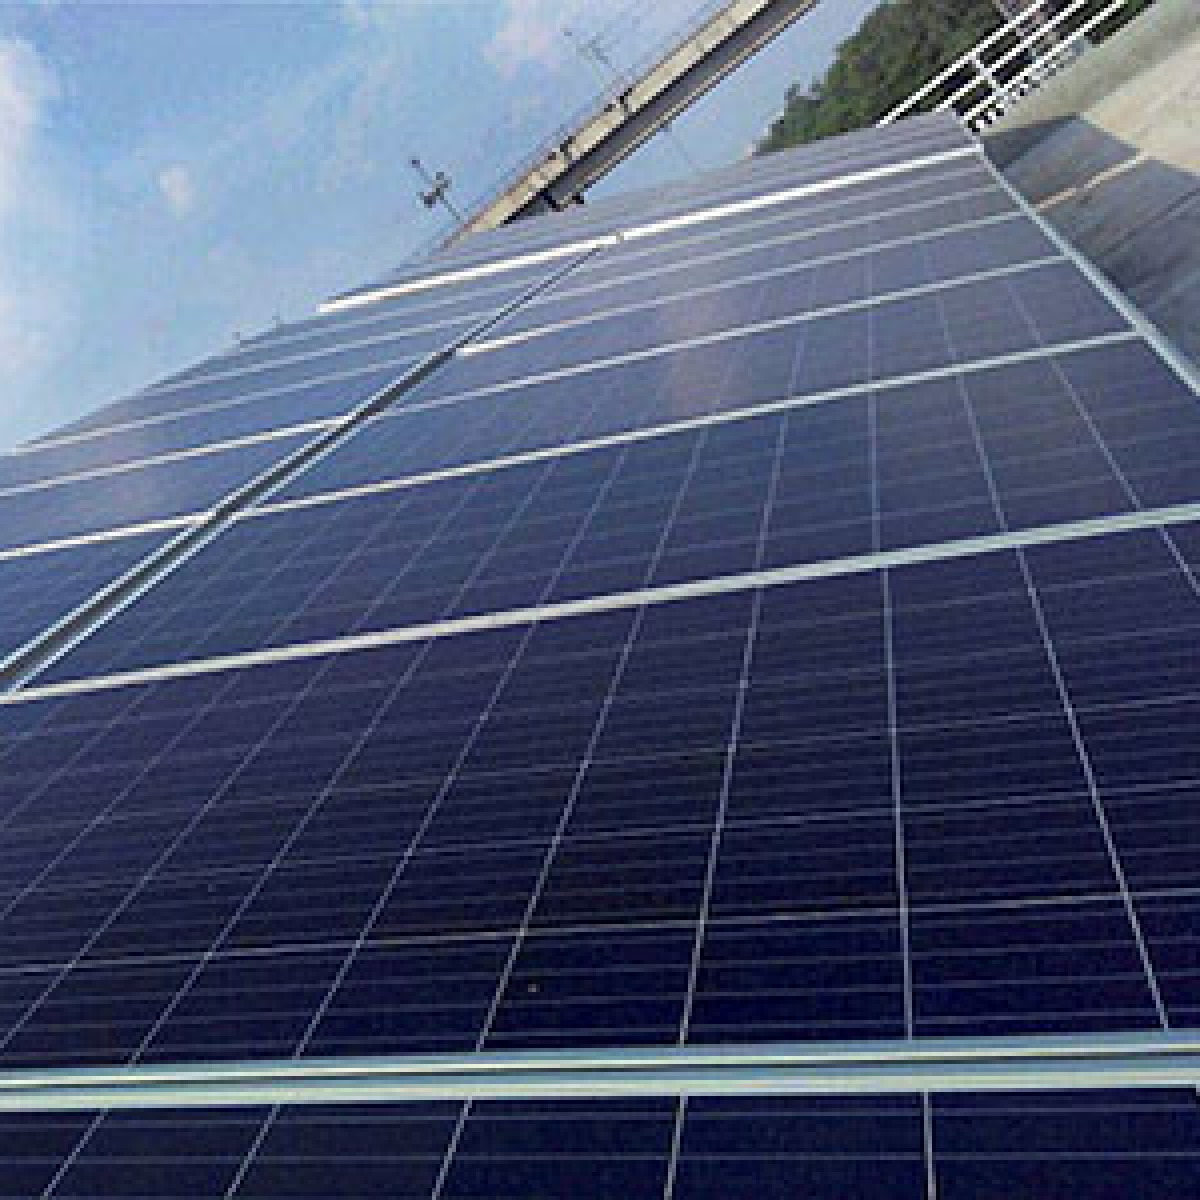 Gujarat tops in rooftop solar installation across the country: Renewable Energy Minister Singh